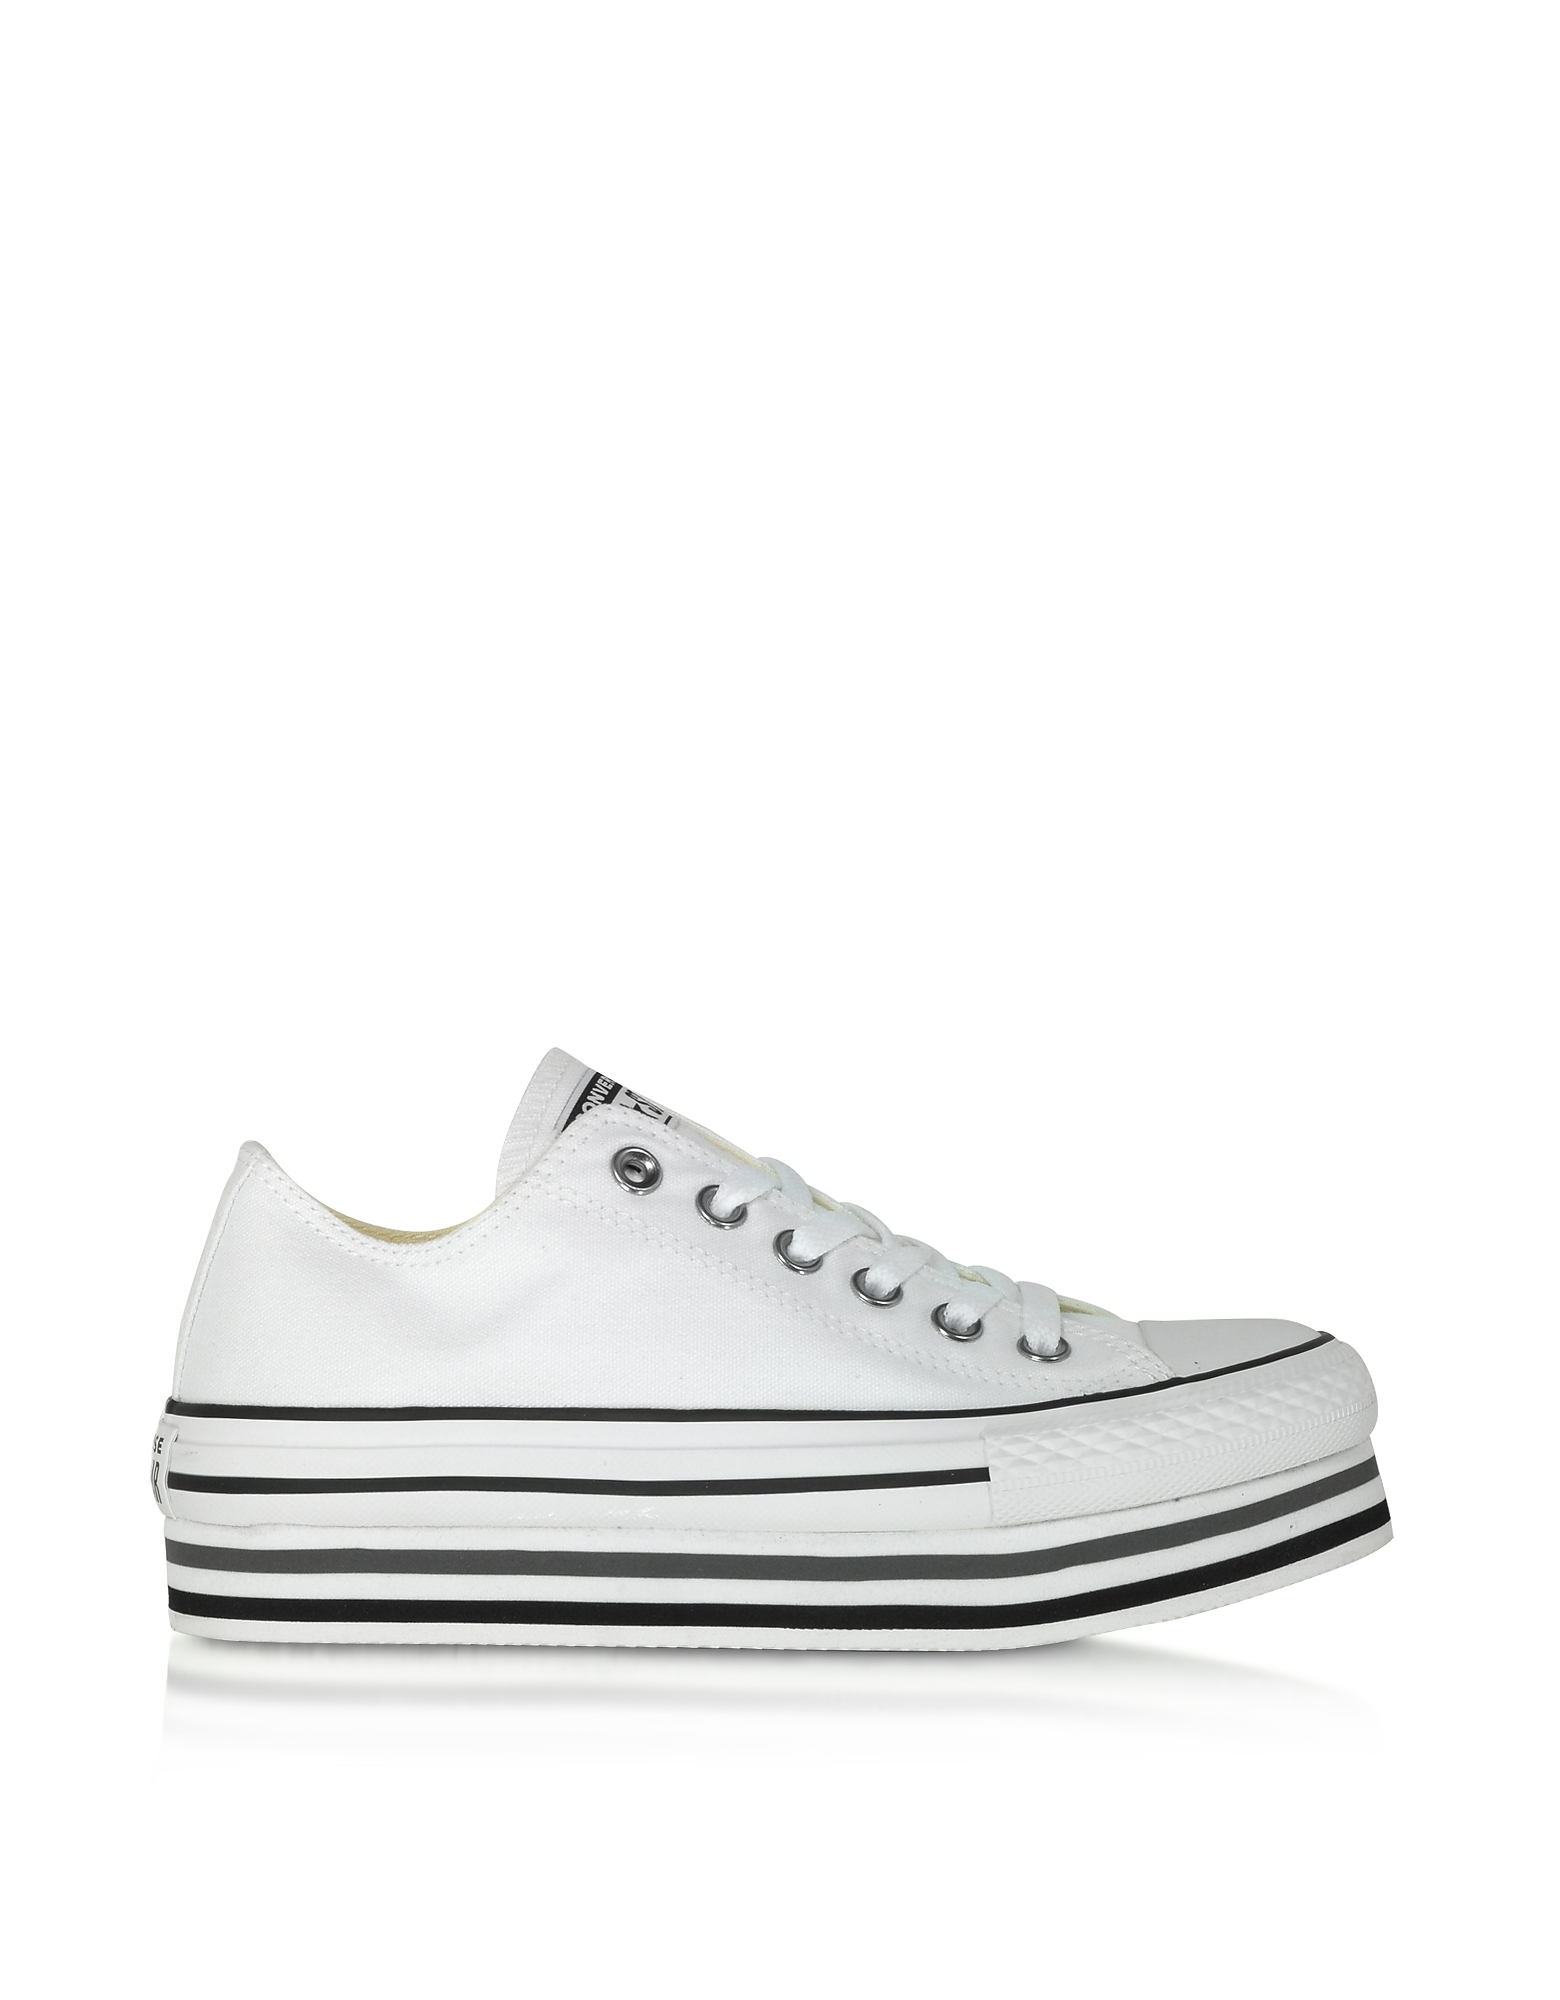 Converse Limited Edition Designer Shoes, White Chuck Taylor All Star Platform EVA Layer